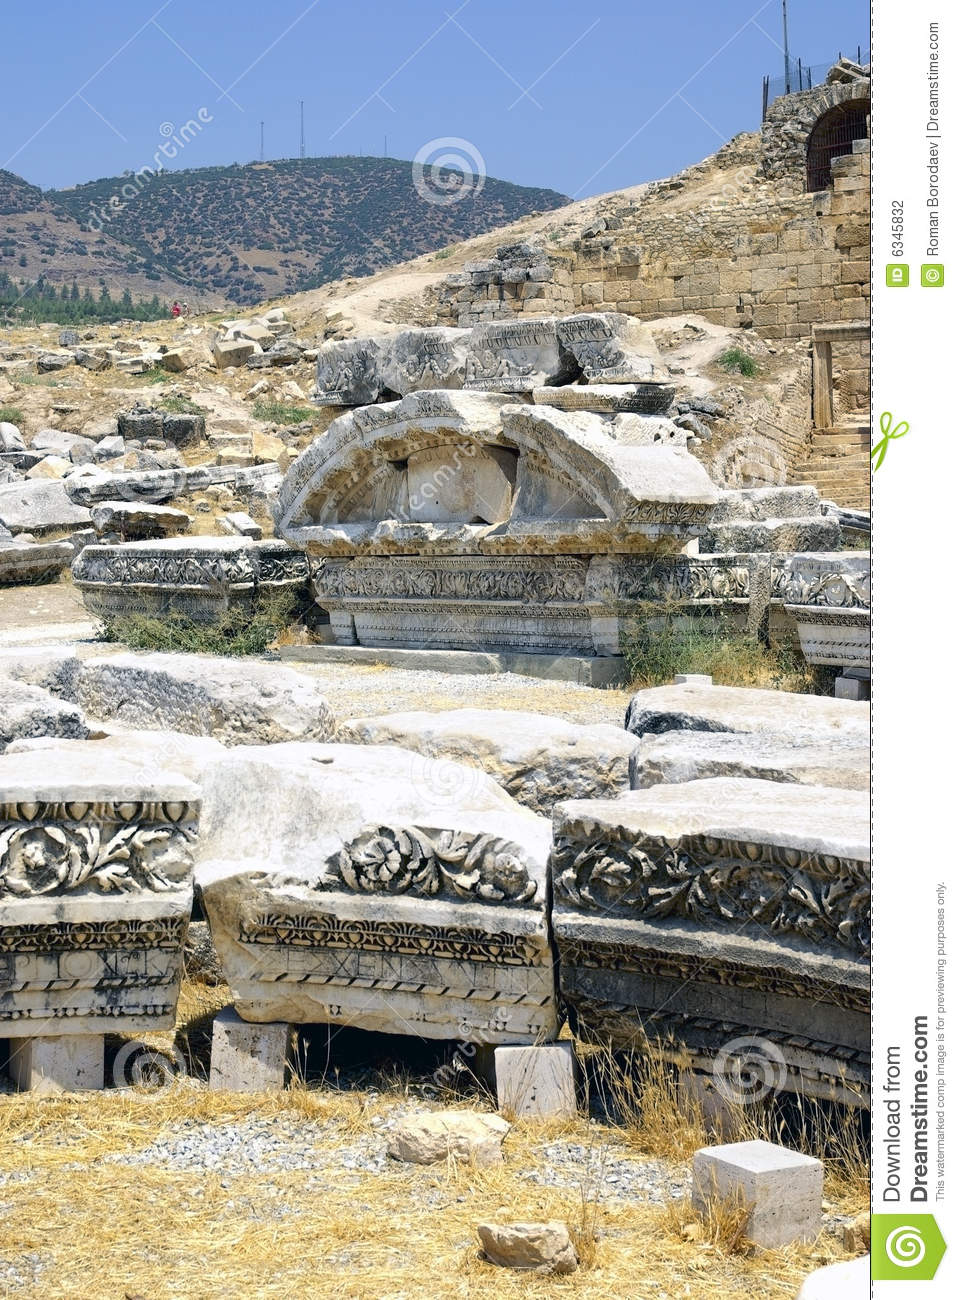 Ancient Ruins Of Hierapolis. Pamukkale, Turkey. Stock Photography - Image: 63...